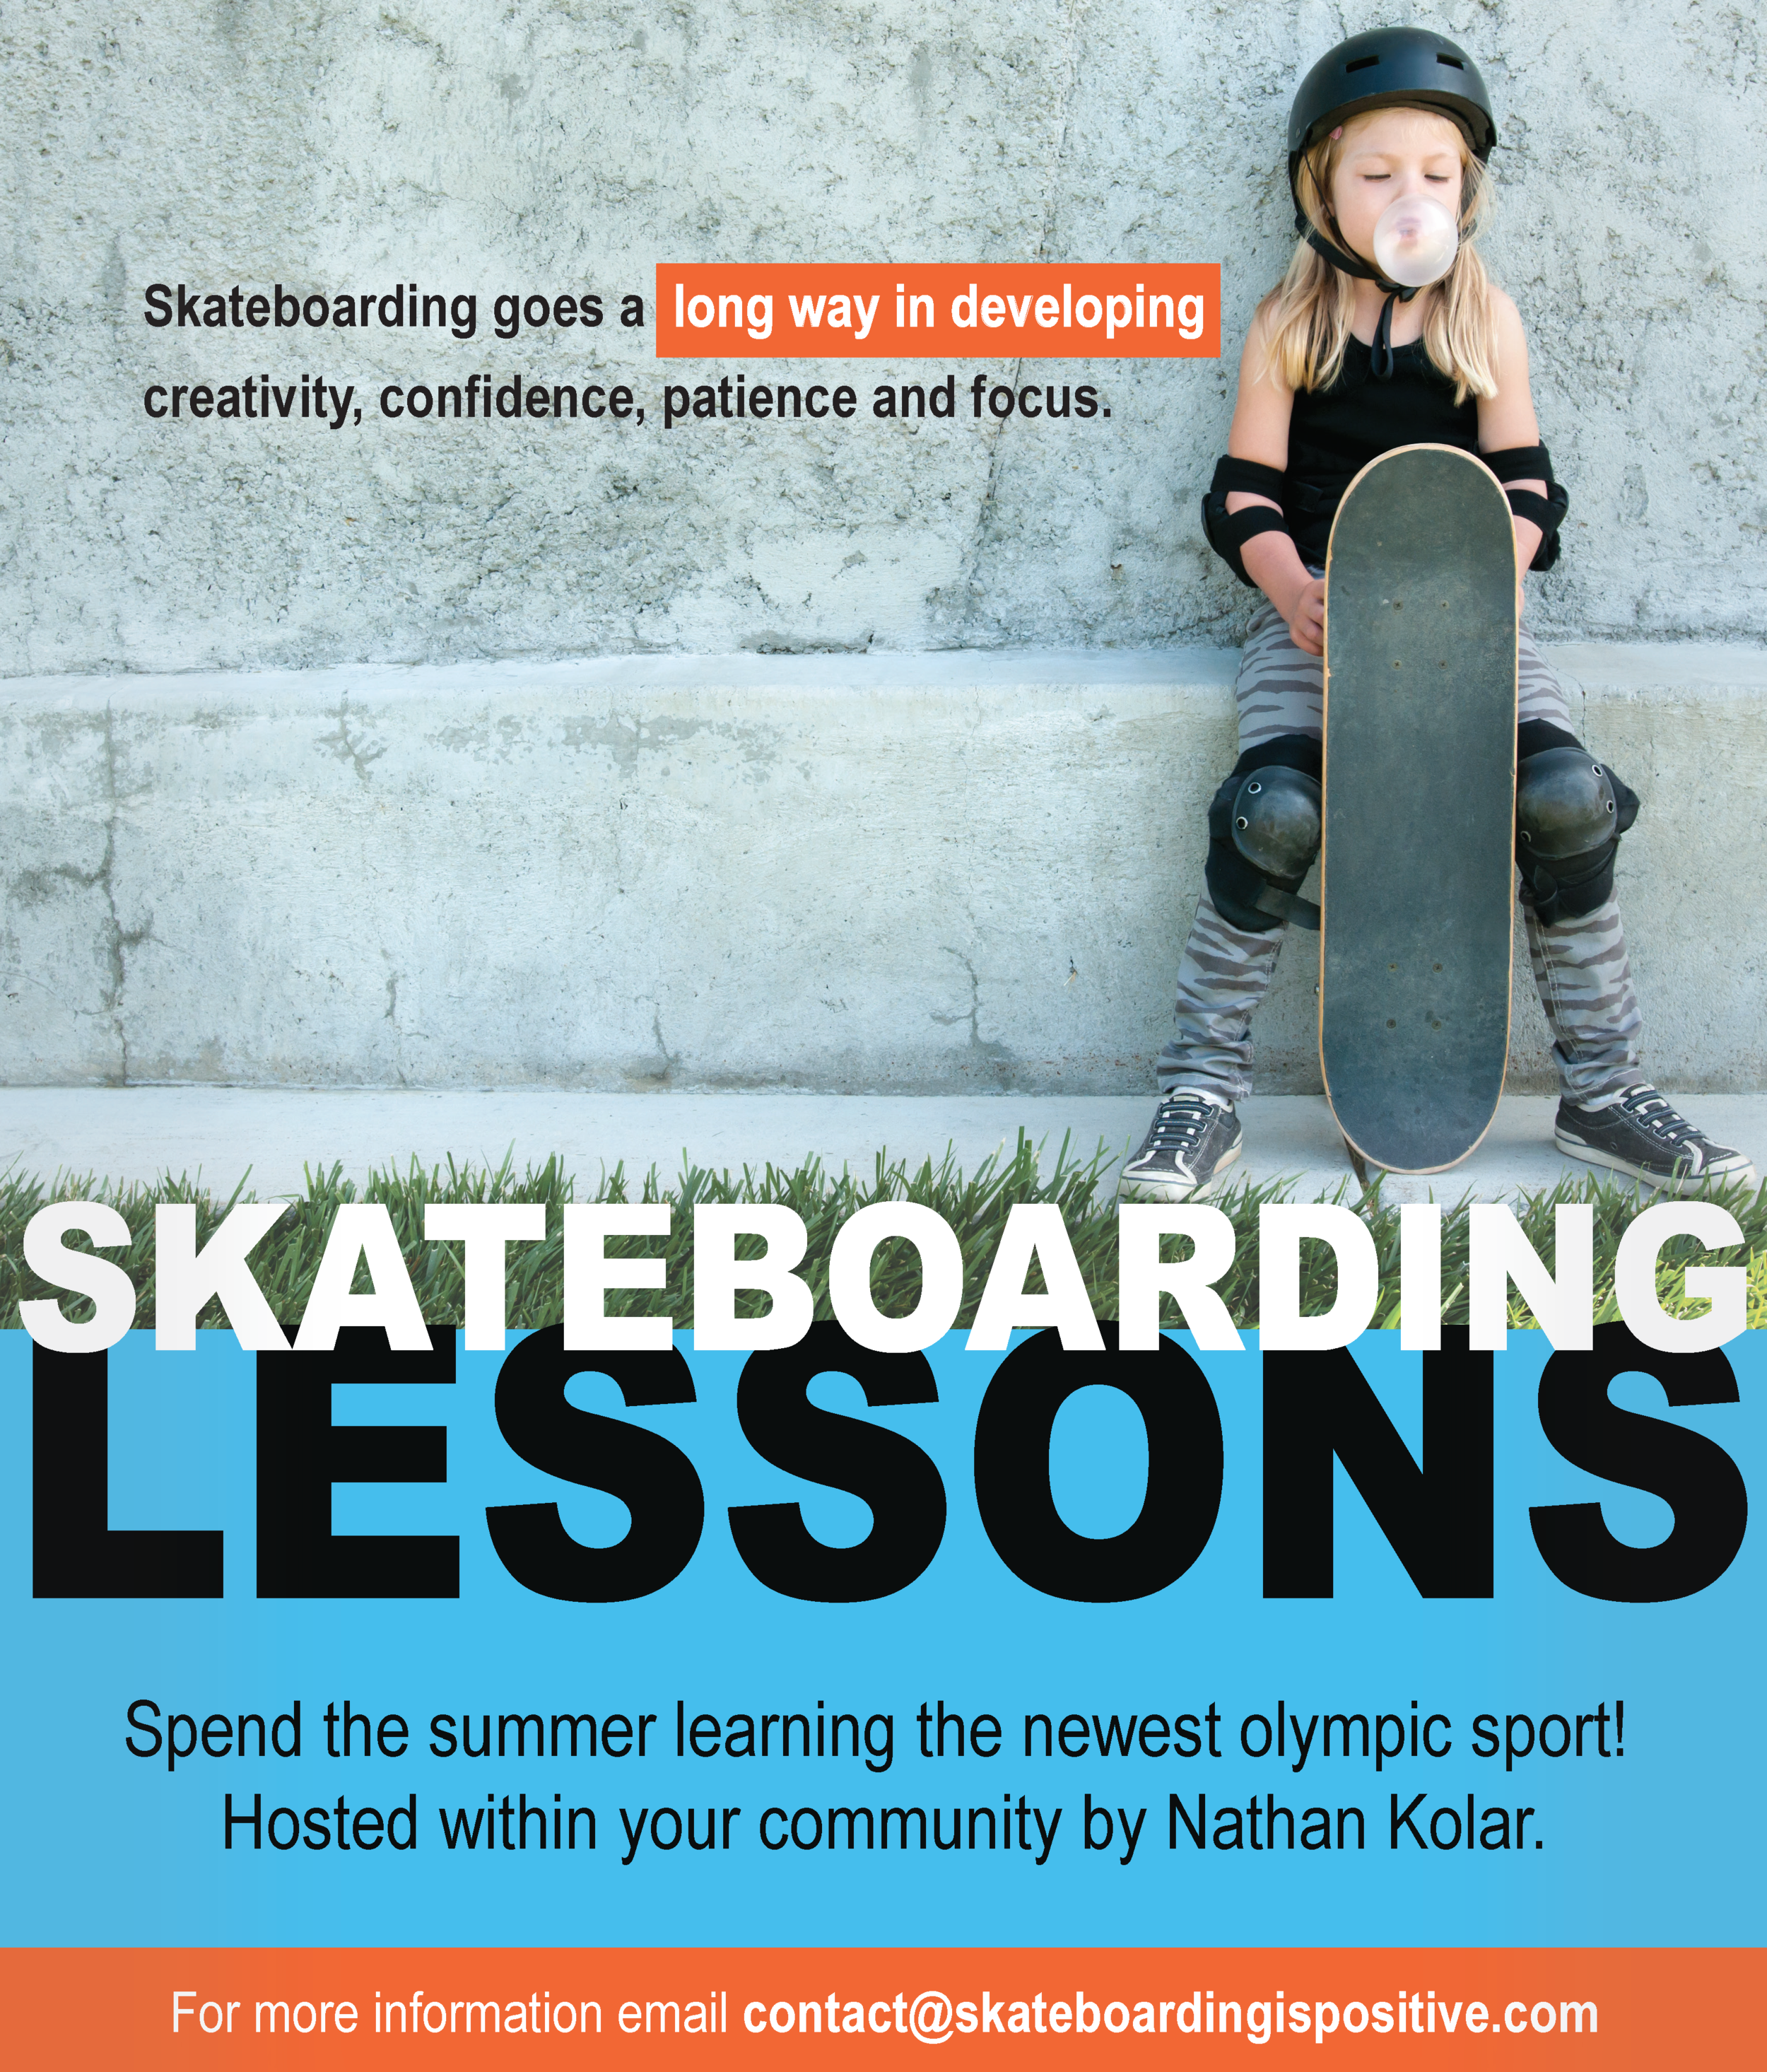 S.I.P now offering beginner group lessons. - Sundays at the Waterdown Skatepark.#sipbeginnerlessons